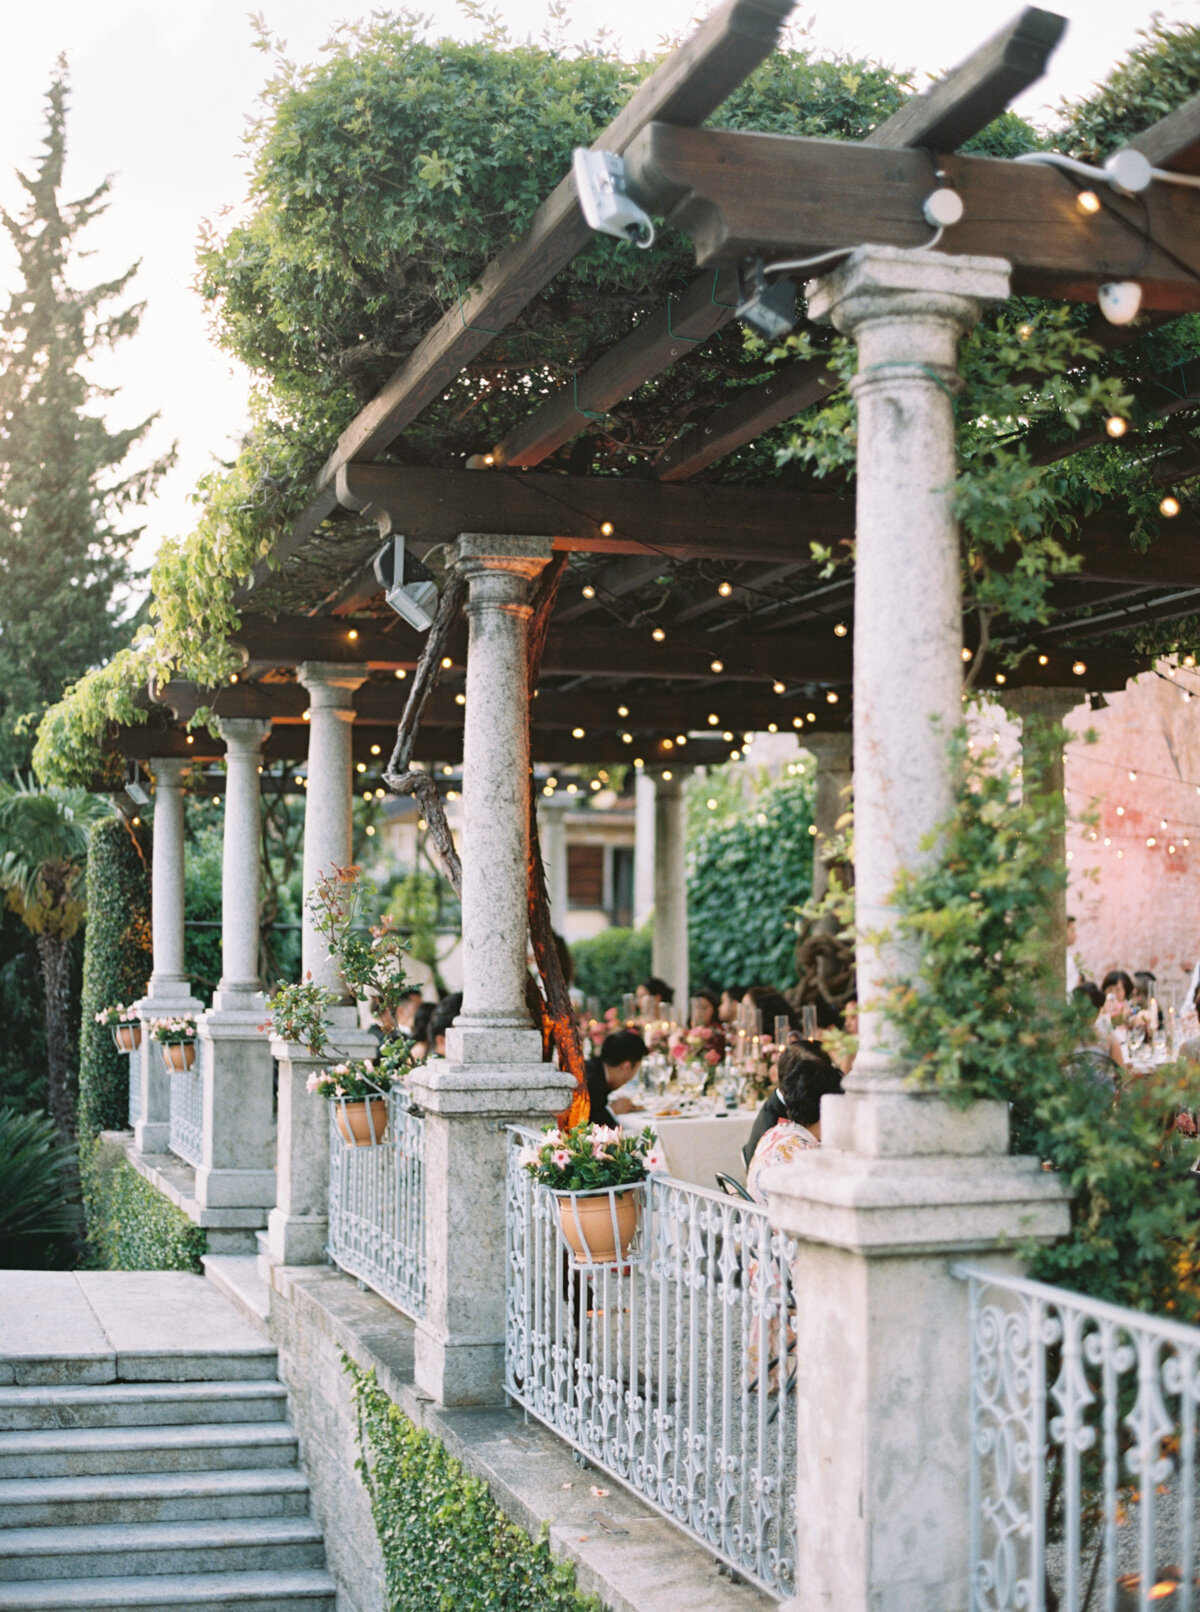 Lake-Como-Villa-Cipressi-Wedding-Katie-Grant-destination-wedding (88 of 93).jpg